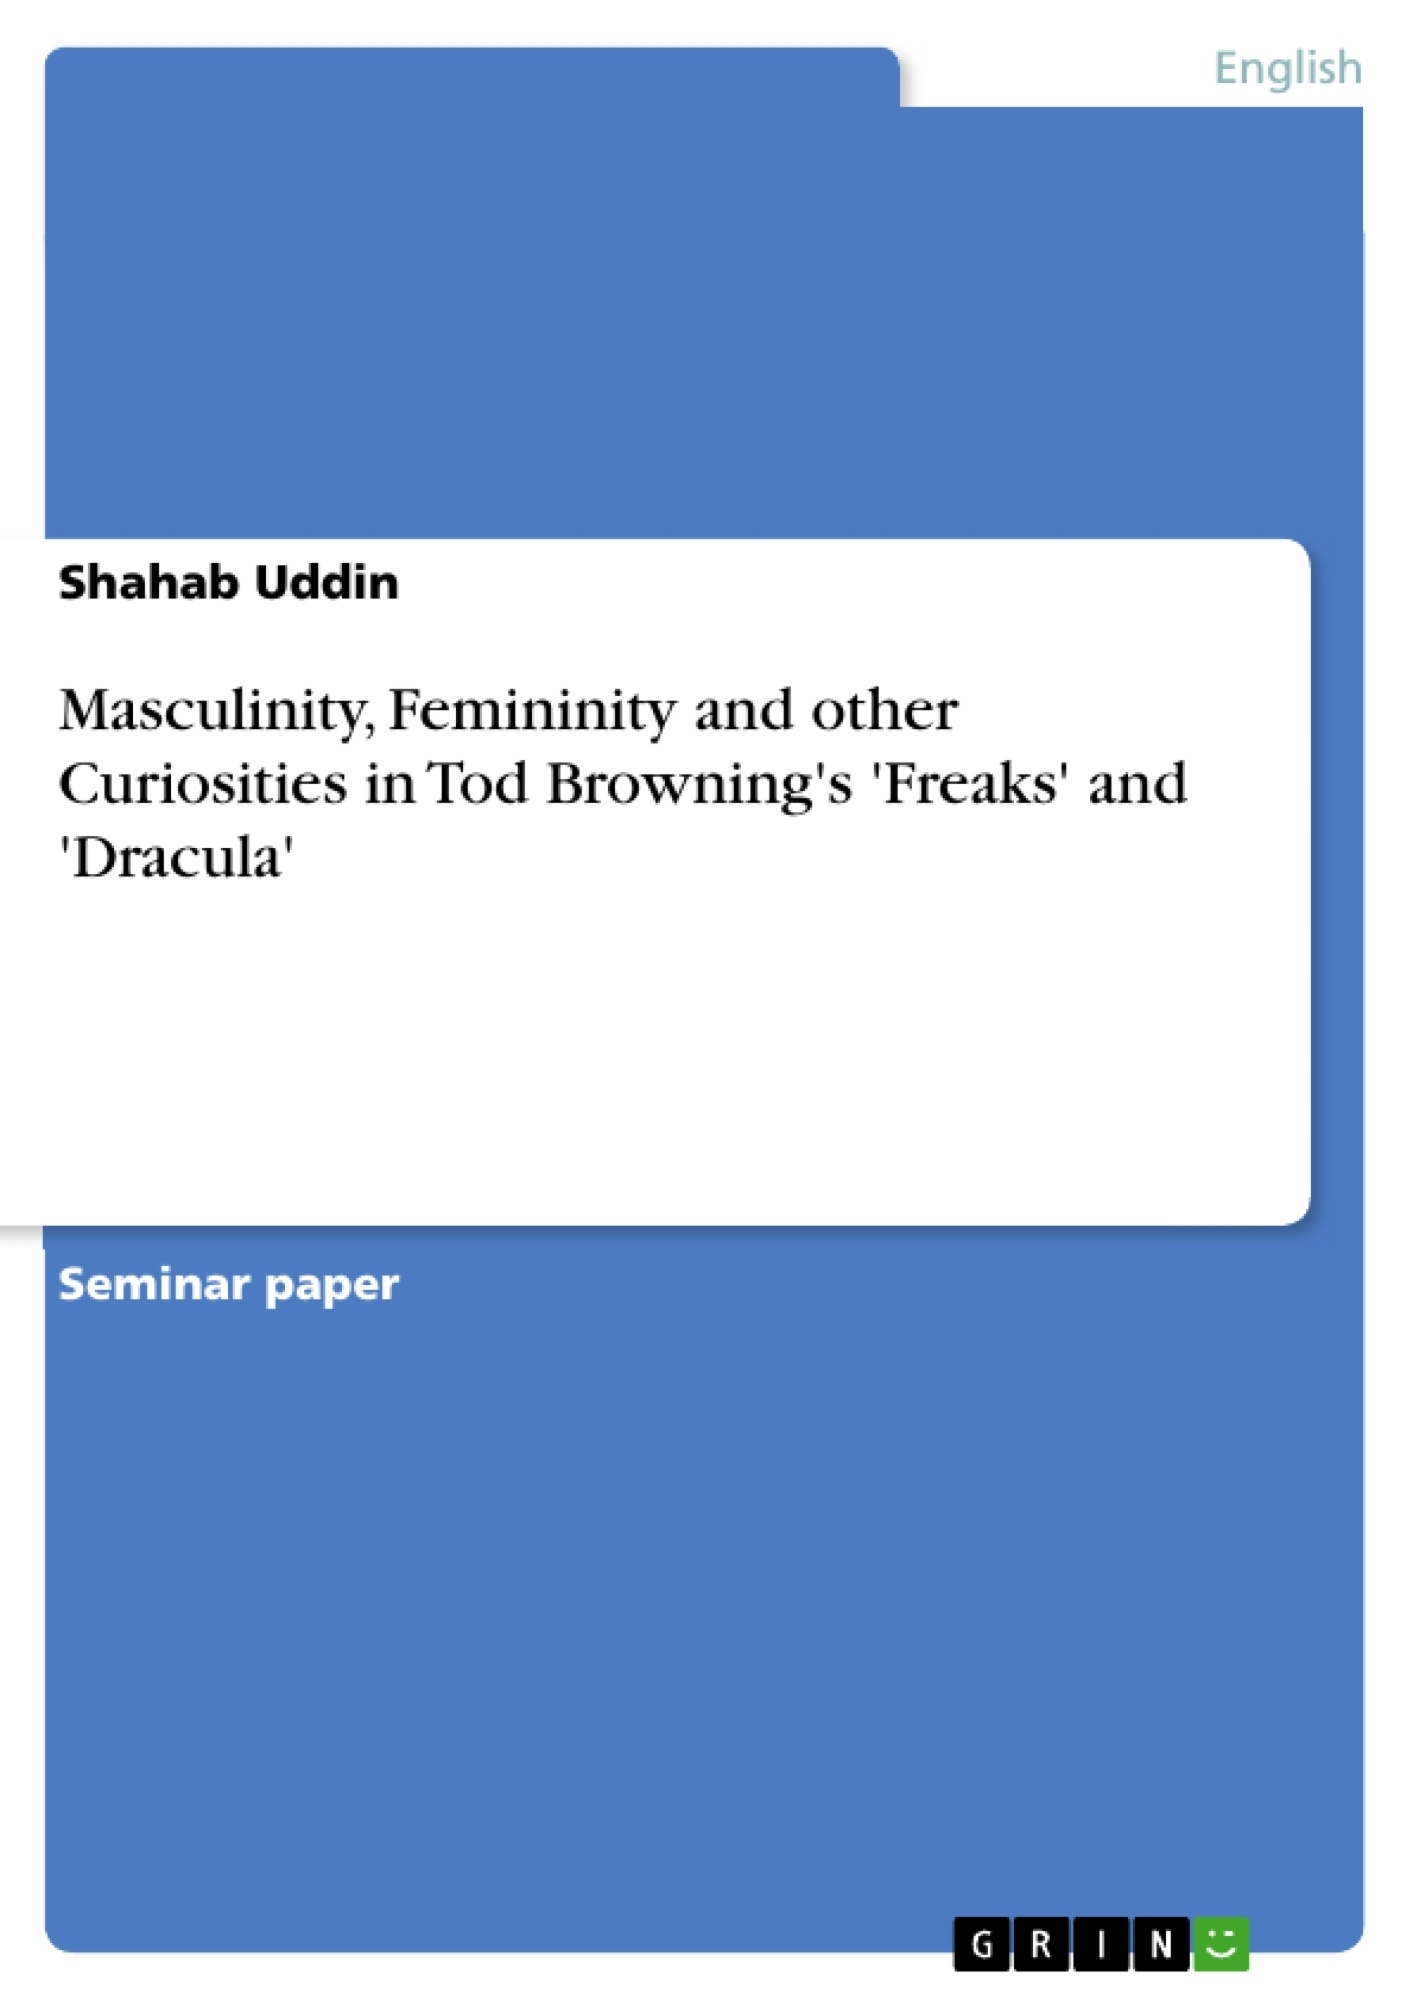 term paper thesiss on femininity Sociology essay - to what extent have media representations of gender ( masculinity and femininity) changed in recent decades if we look at the feminine aspect of gender stereotyping, the media view of femininity has changed drastically if we think back to the way in the media have significant and long-term effects.